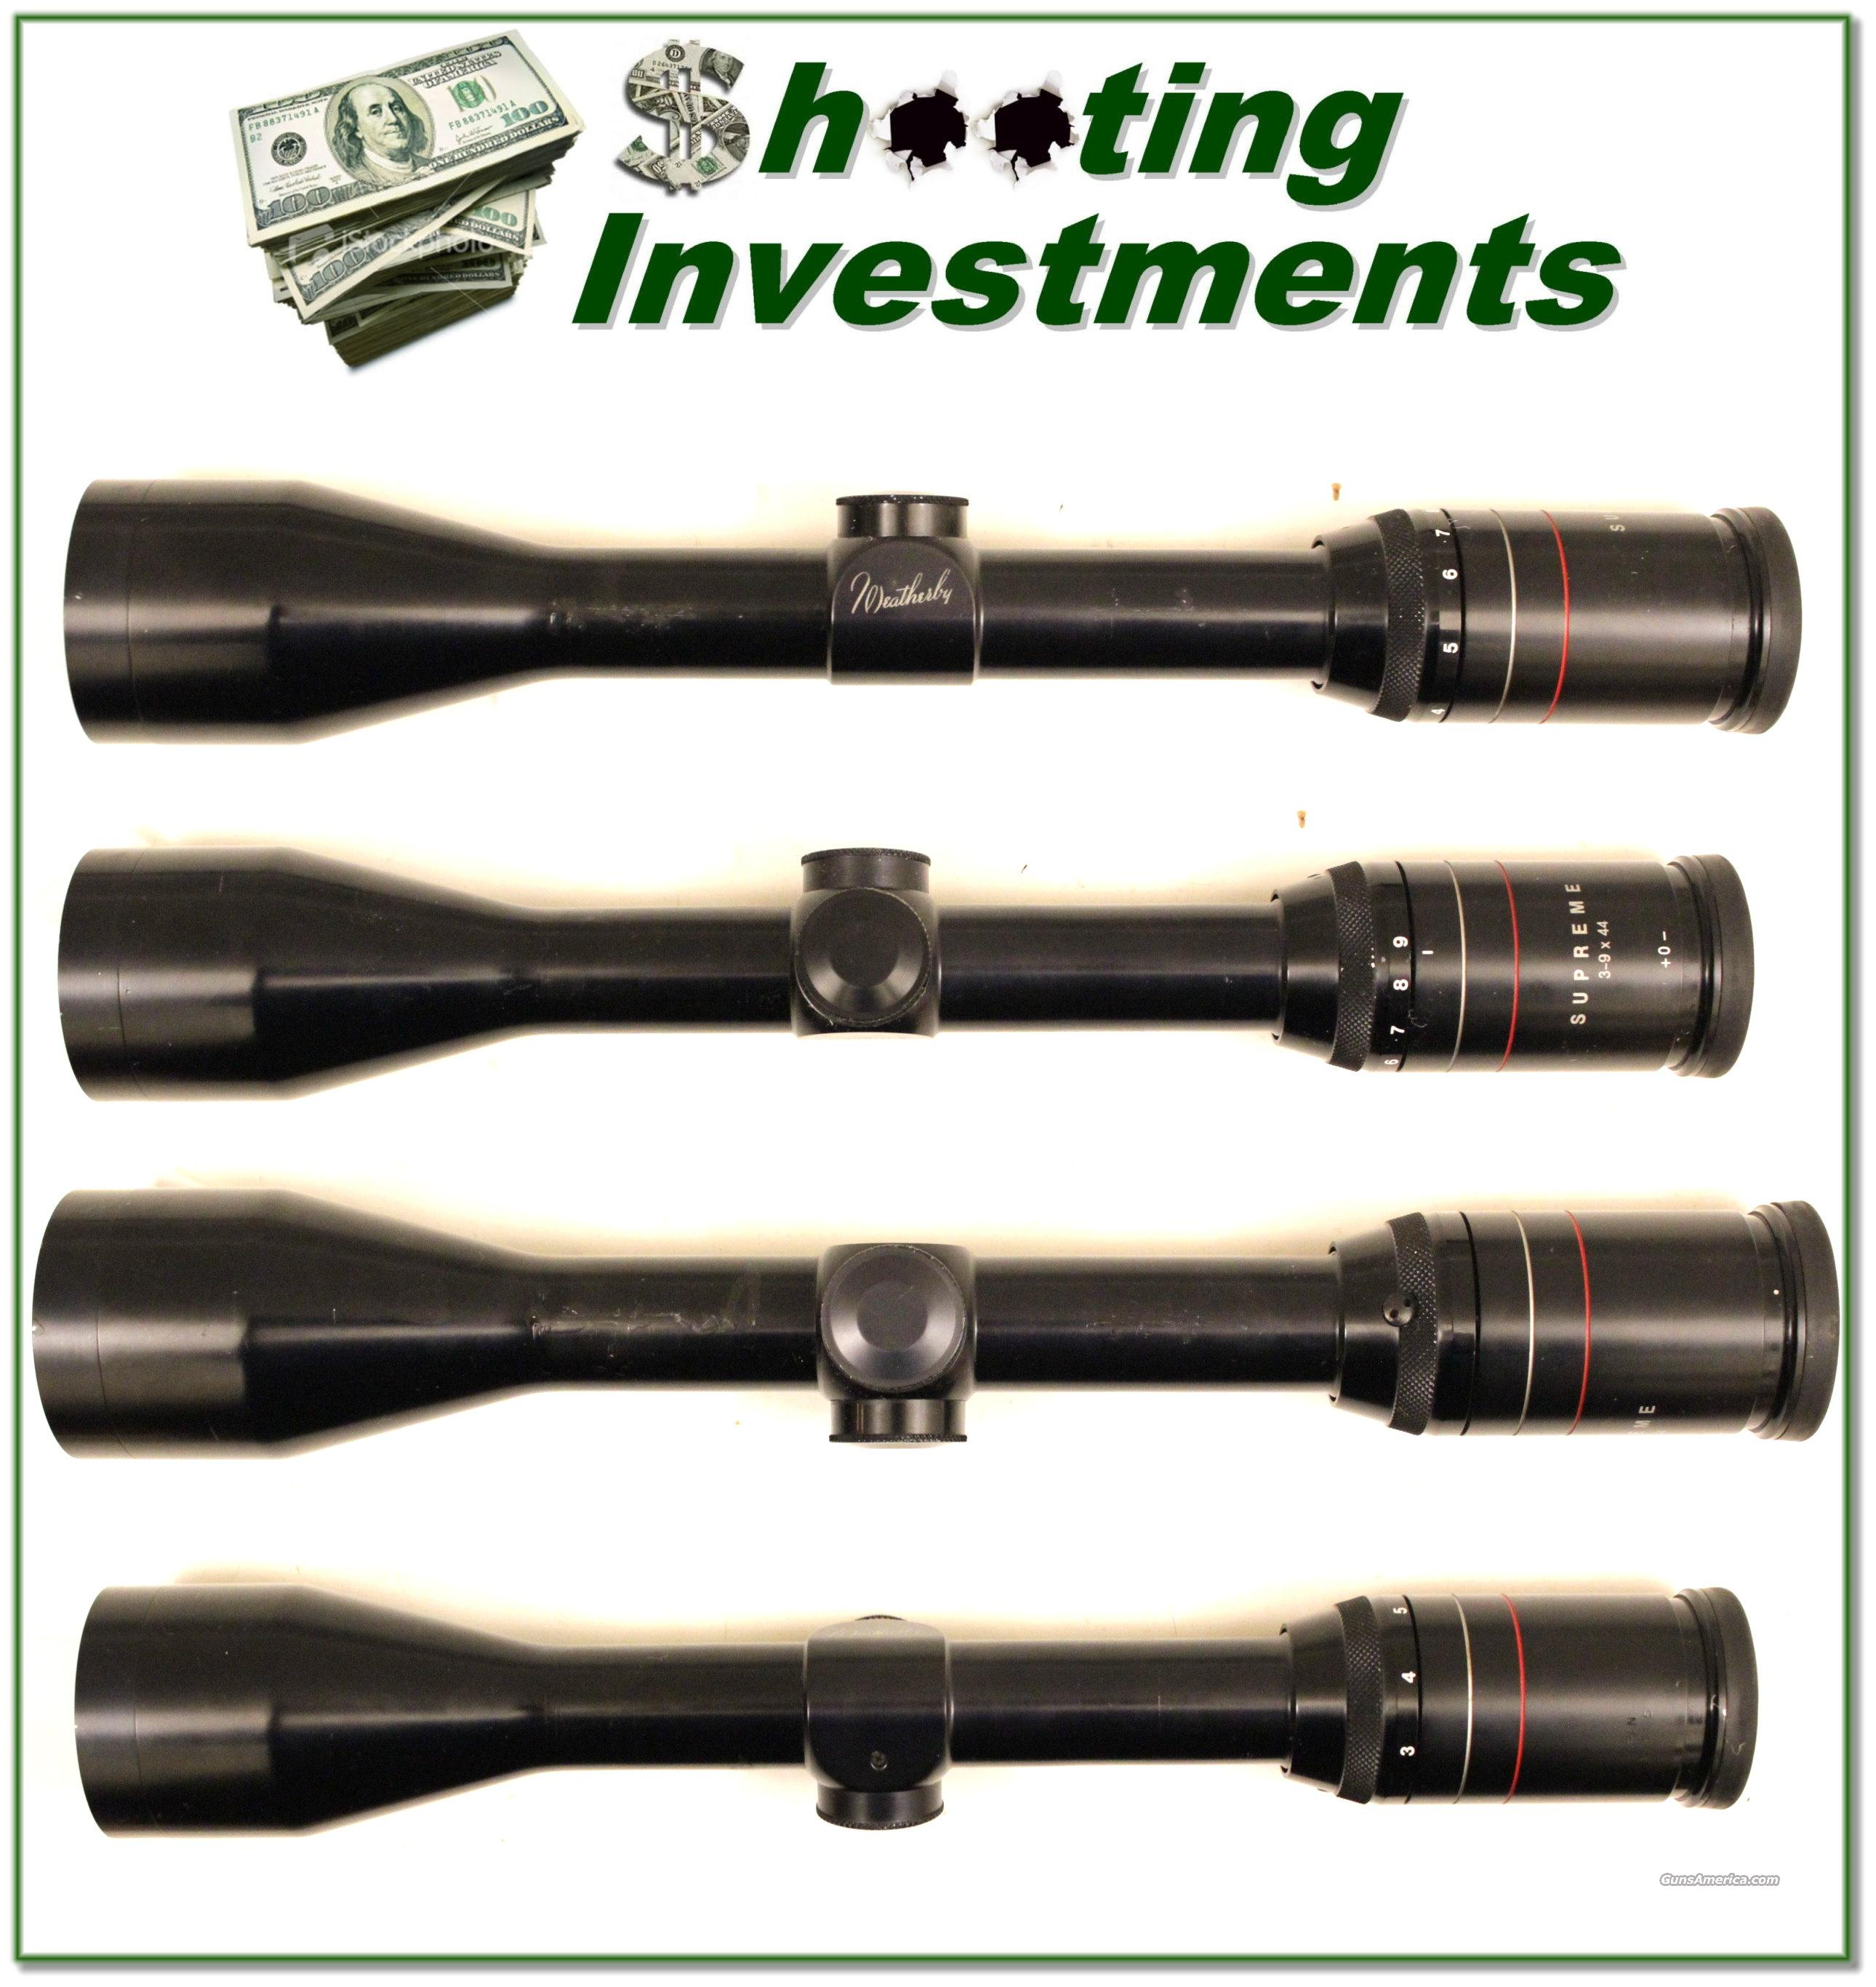 Weatherby 3-9 Supreme rifle scope  Non-Guns > Scopes/Mounts/Rings & Optics > Rifle Scopes > Variable Focal Length